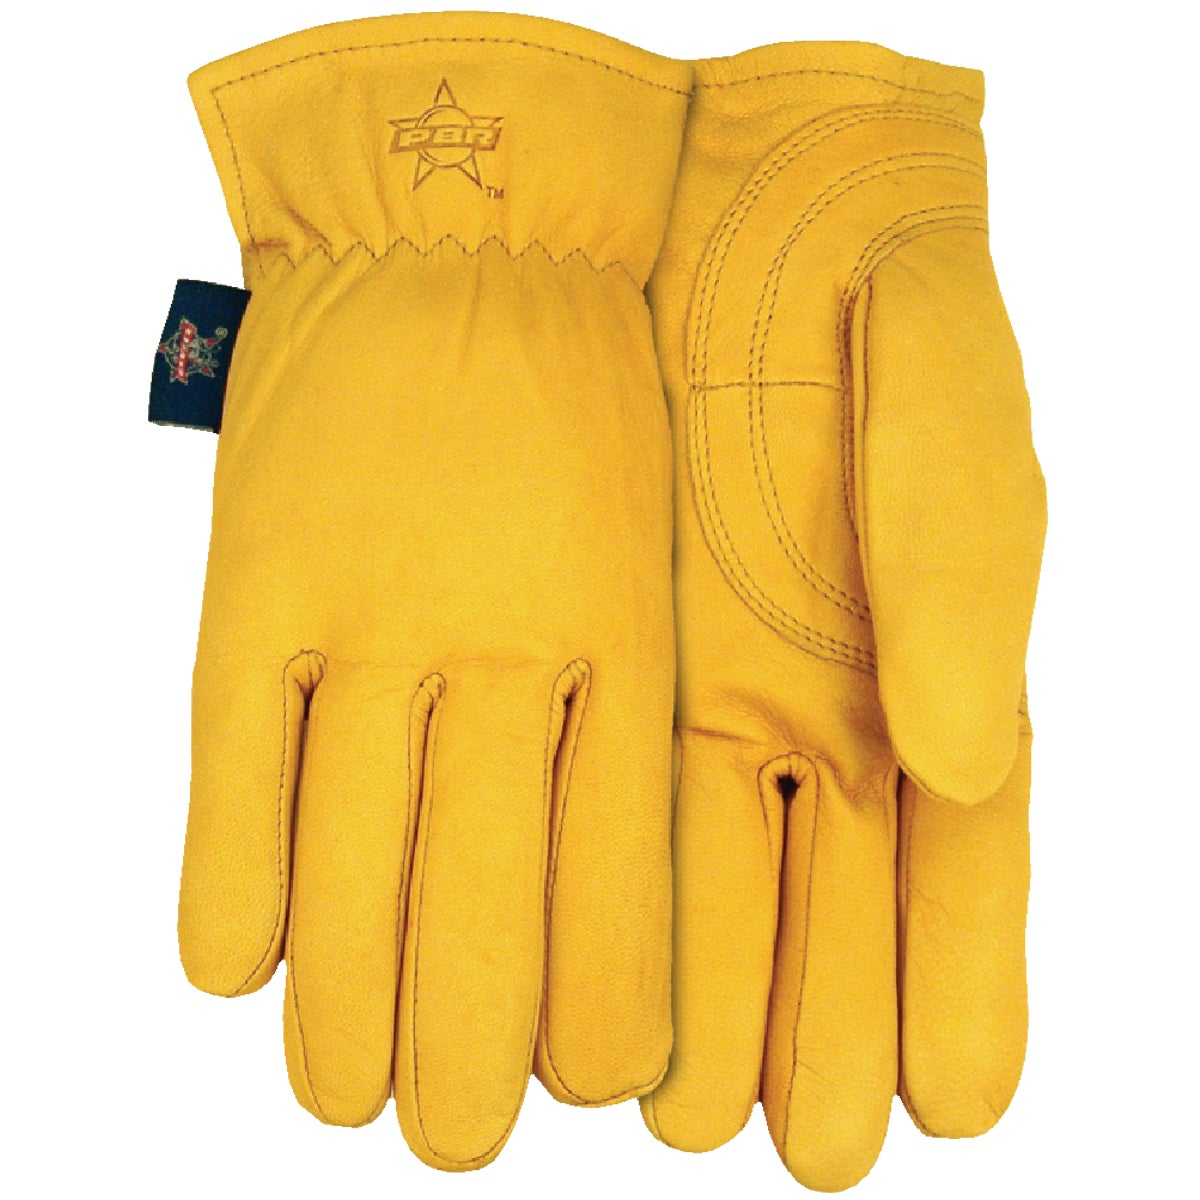 XL PBR GOATSKIN GLOVE - PB105-XL by Midwest Quality Glov